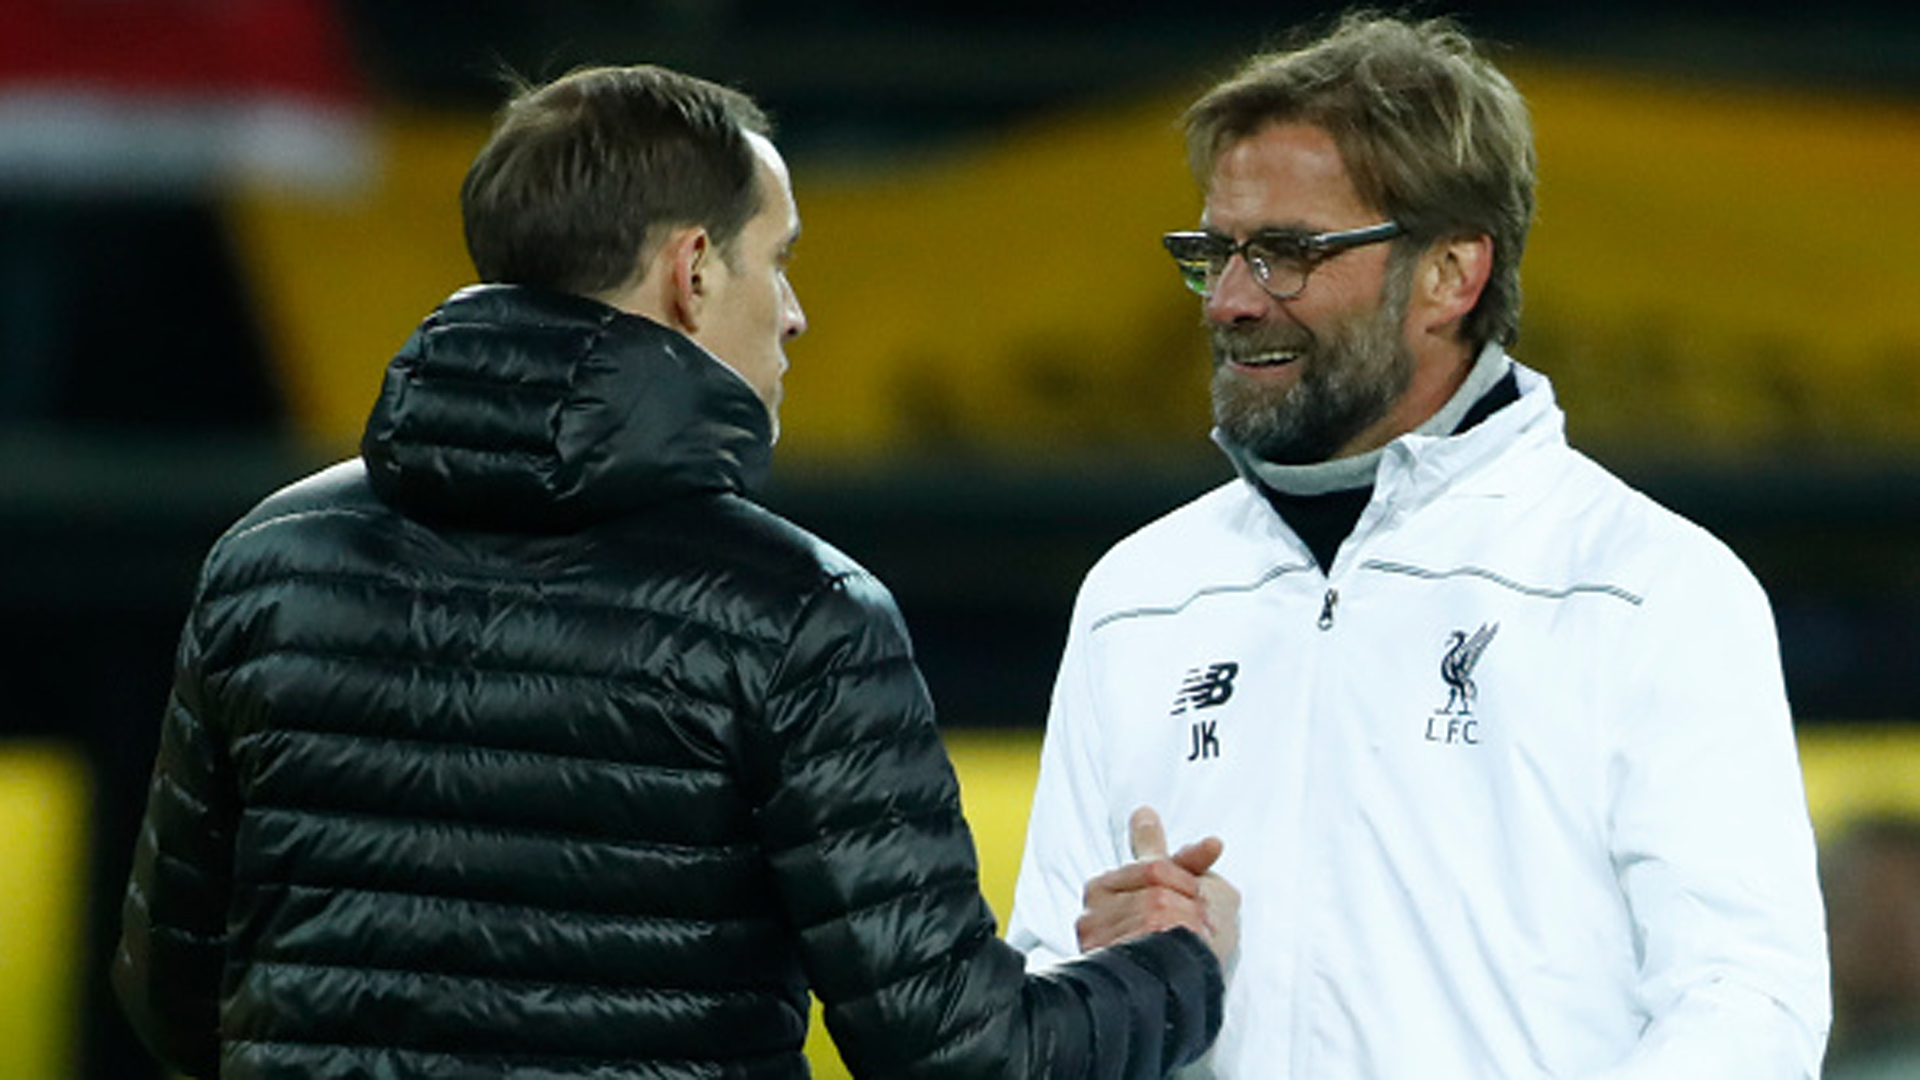 Tuchel labels Klopp a 'genius' & plays down comparisons with Liverpool boss  ahead of Chelsea's trip to Anfield | Goal.com